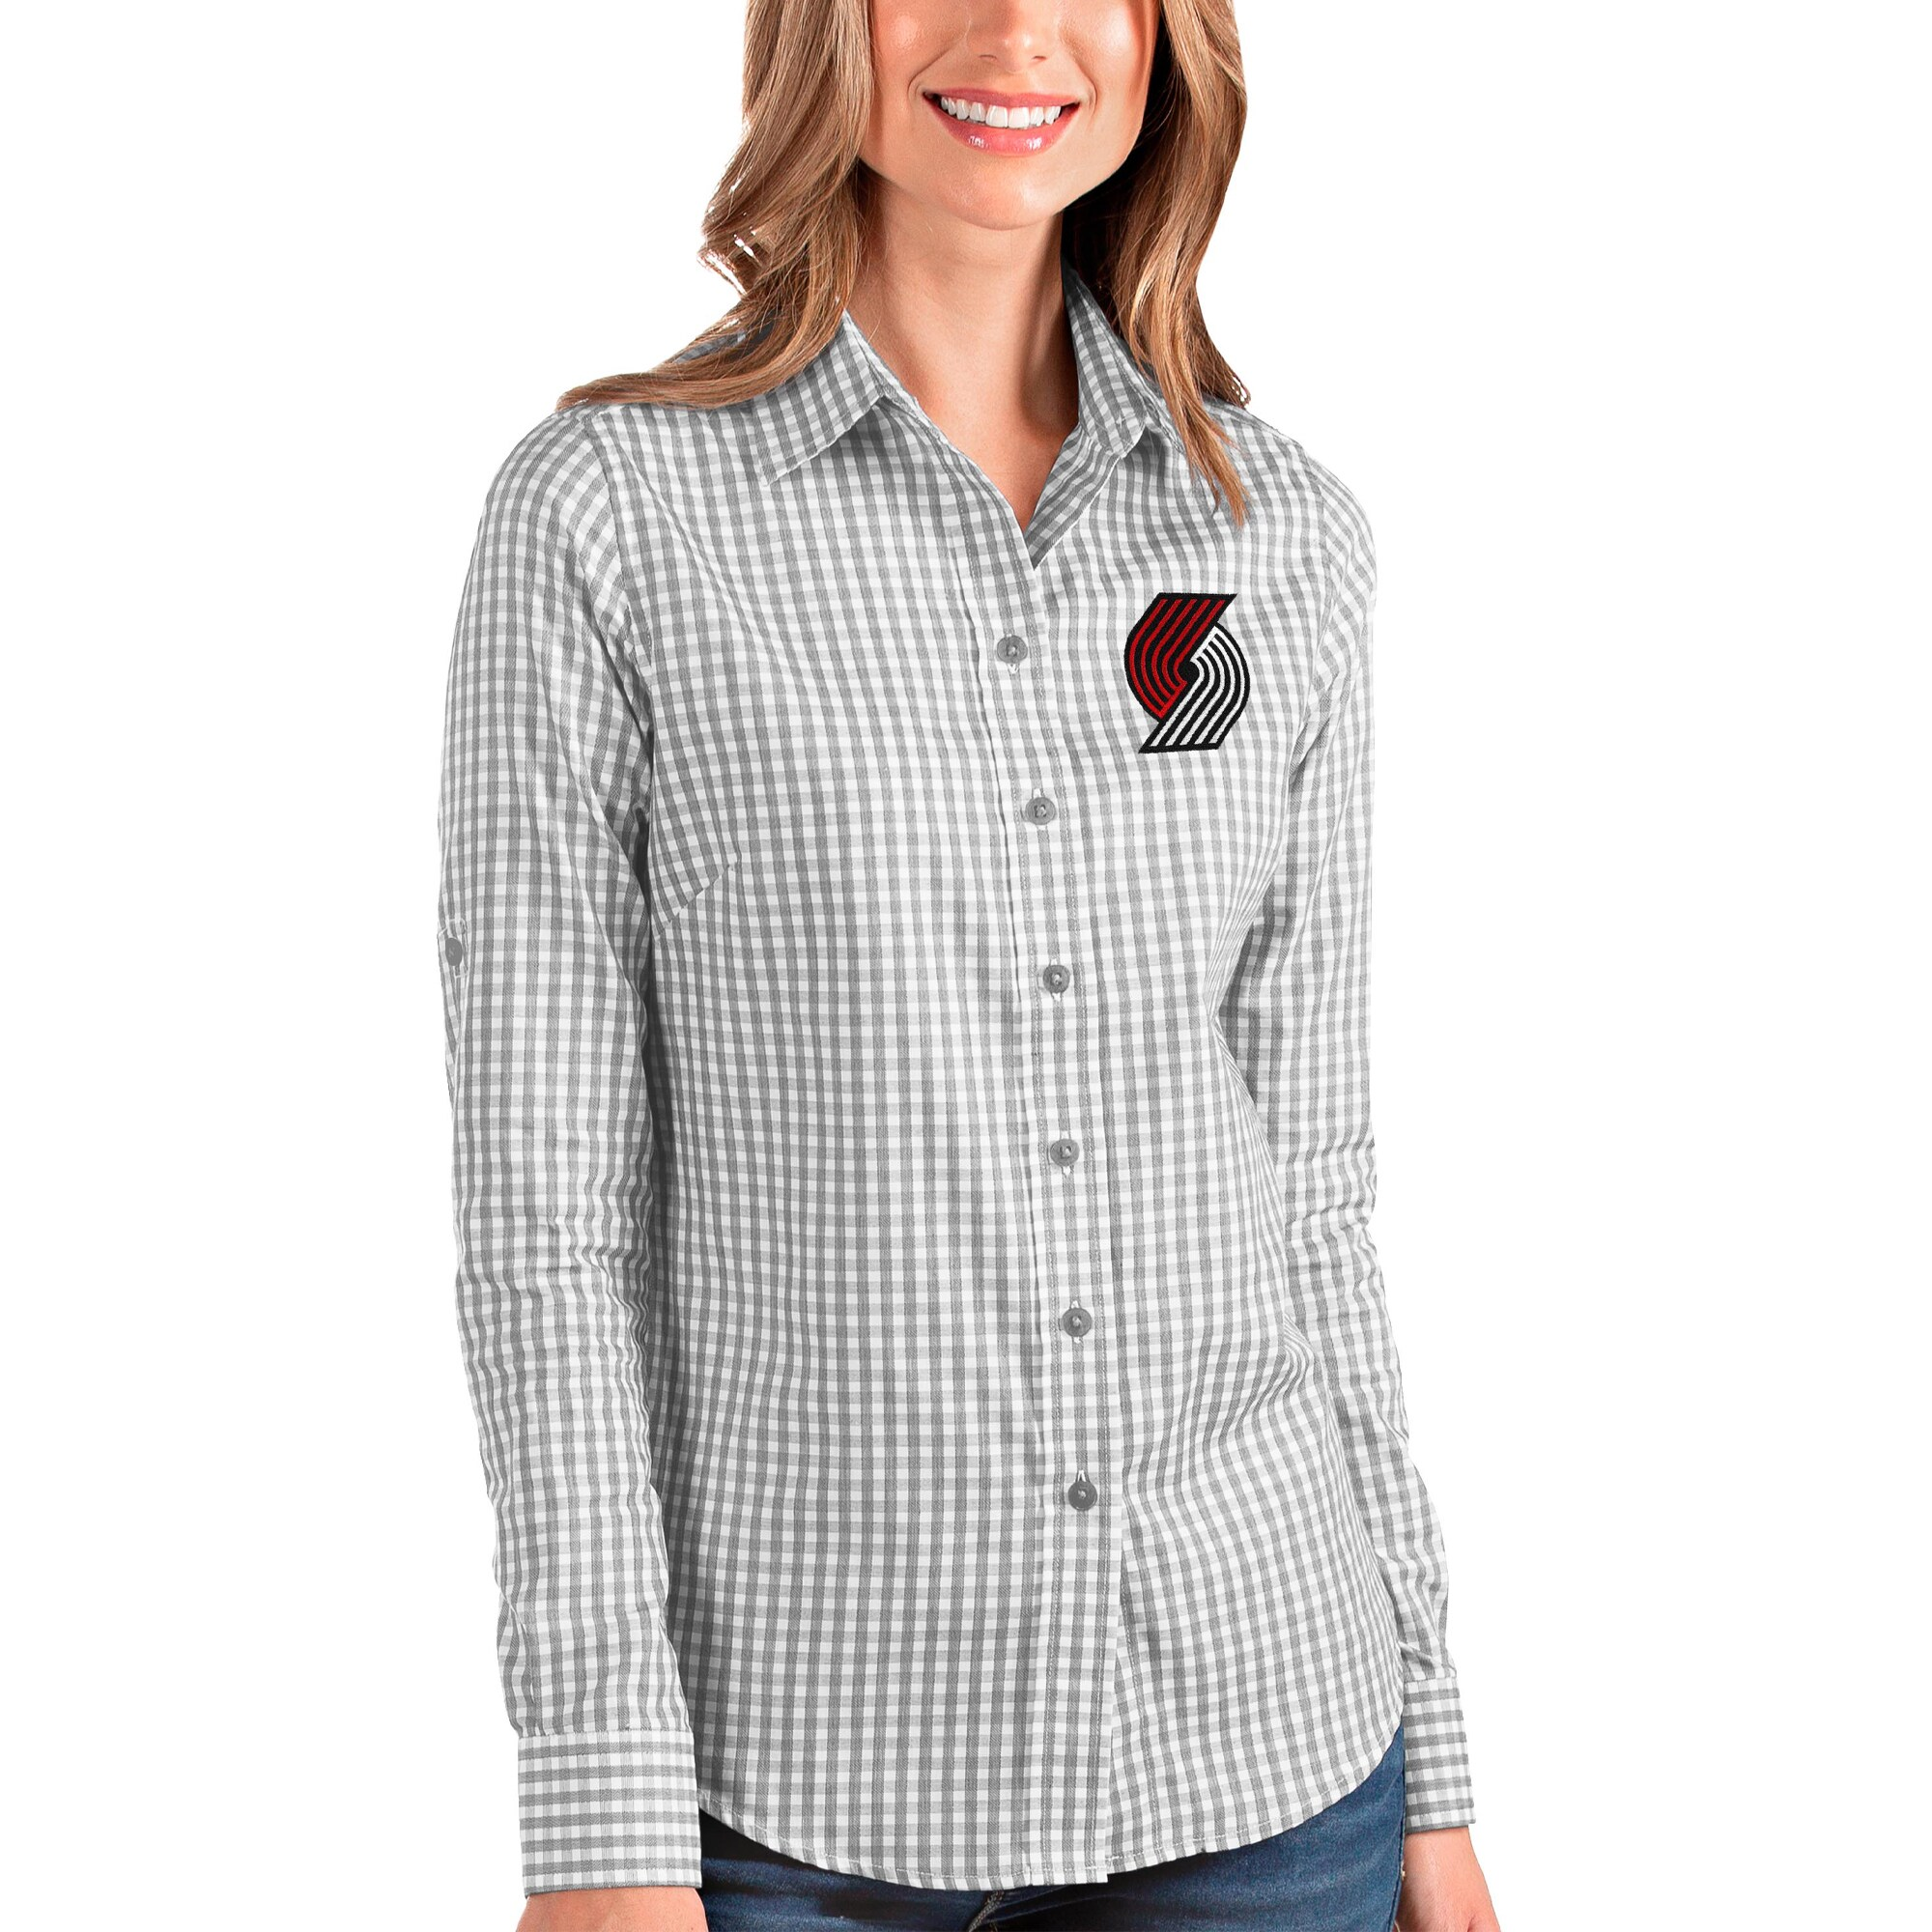 Portland Trail Blazers Antigua Women's Structure Button-Up Long Sleeve Shirt - Charcoal/White